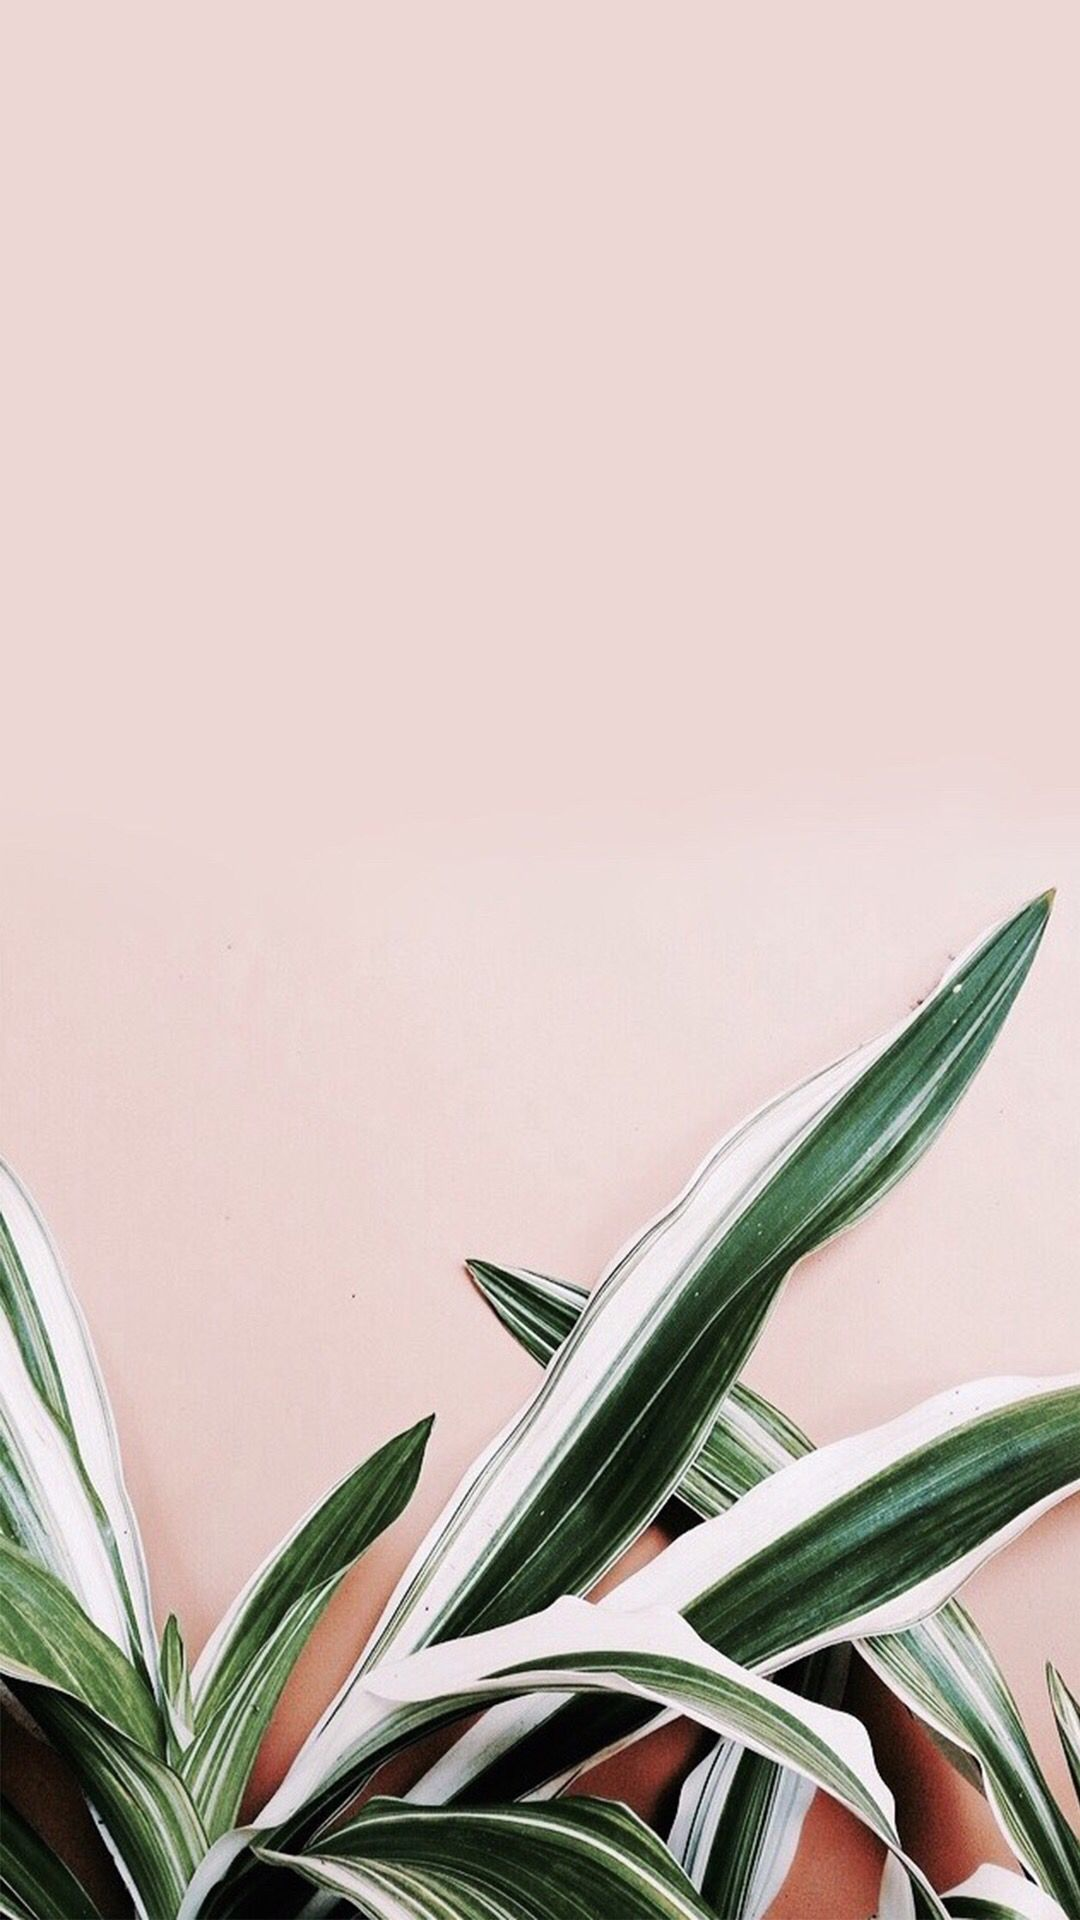 iPhone Wallpapers HD from Uploaded by user